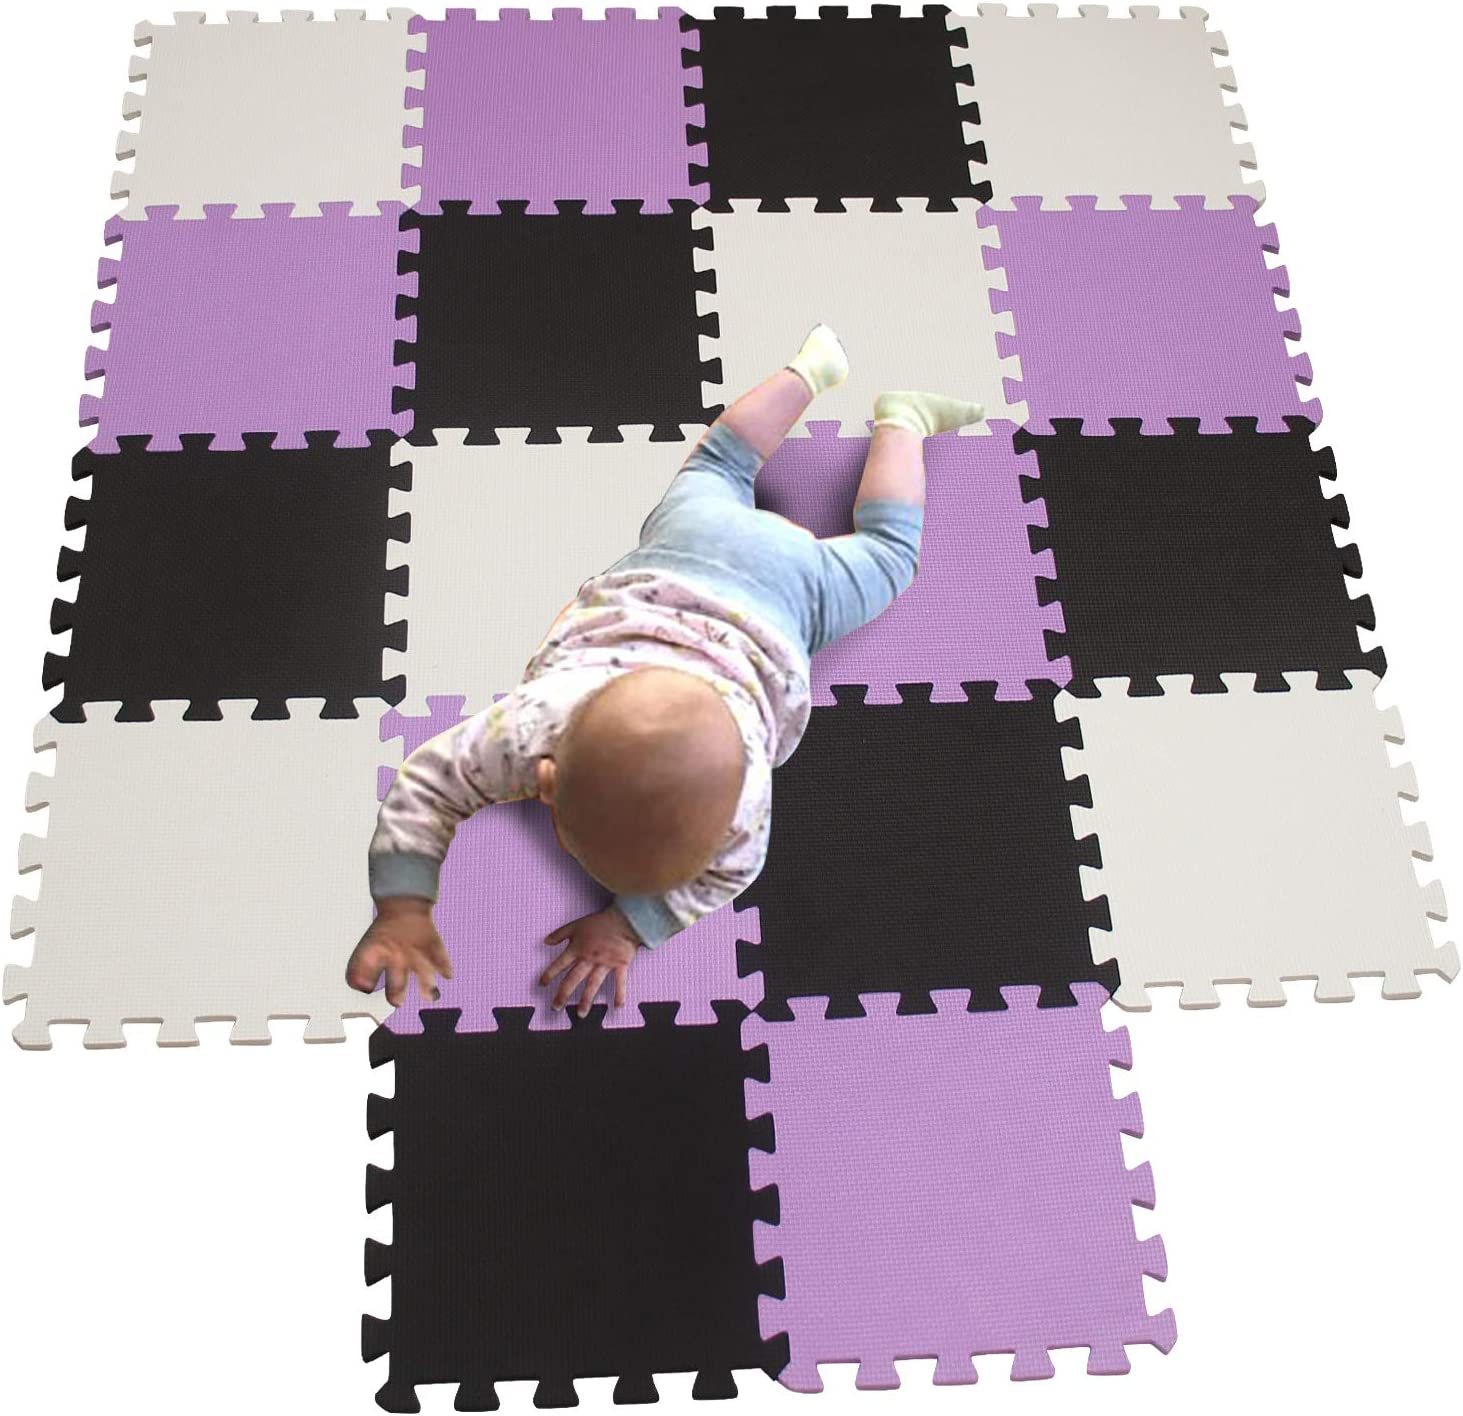 MQIAOHAM supreme Children Puzzle mat Sale special price Squares Play Bab Tiles